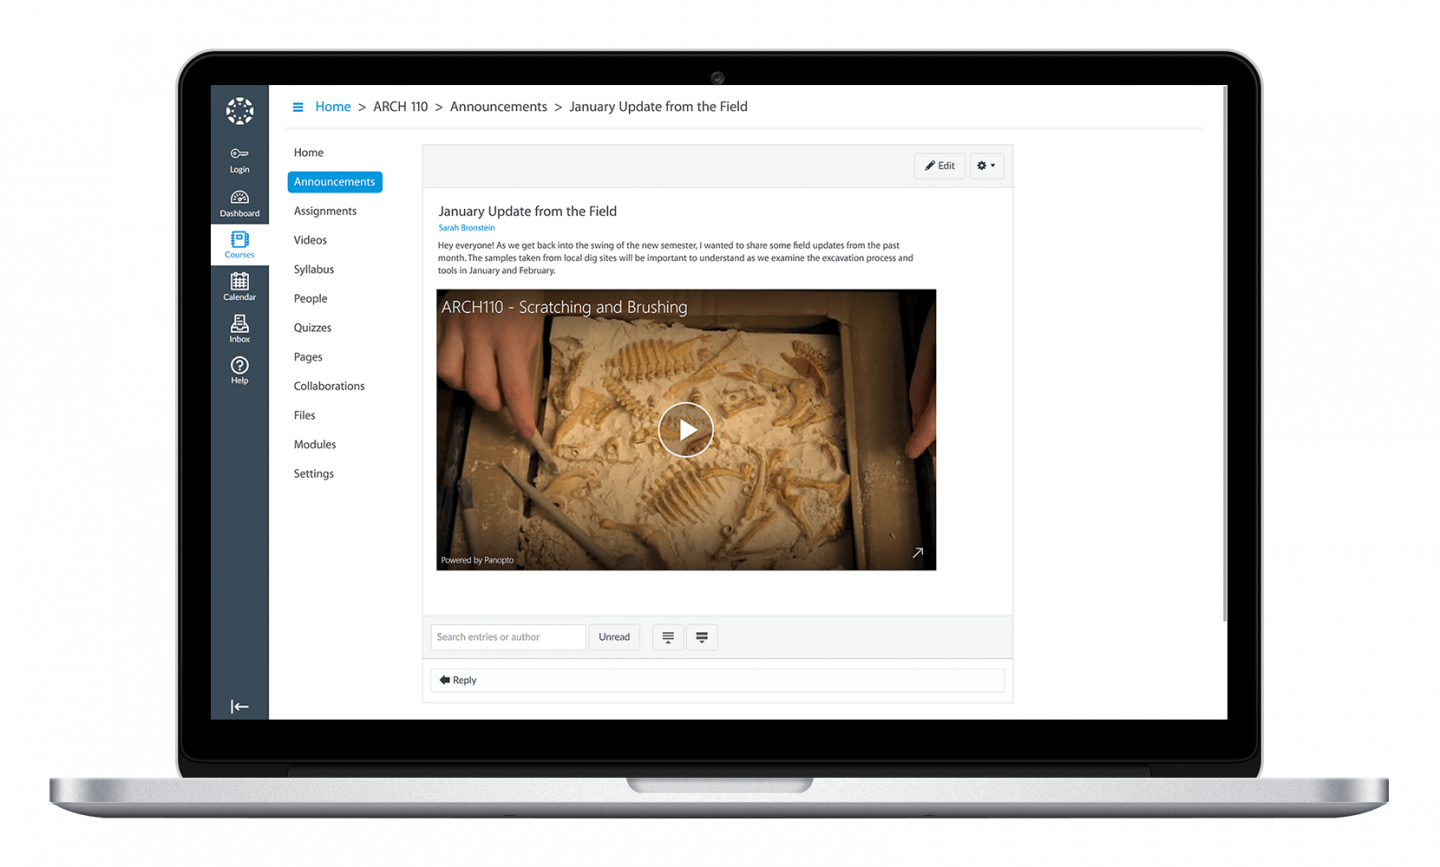 Manage your university's licensed video content with Panopto's campus video platform